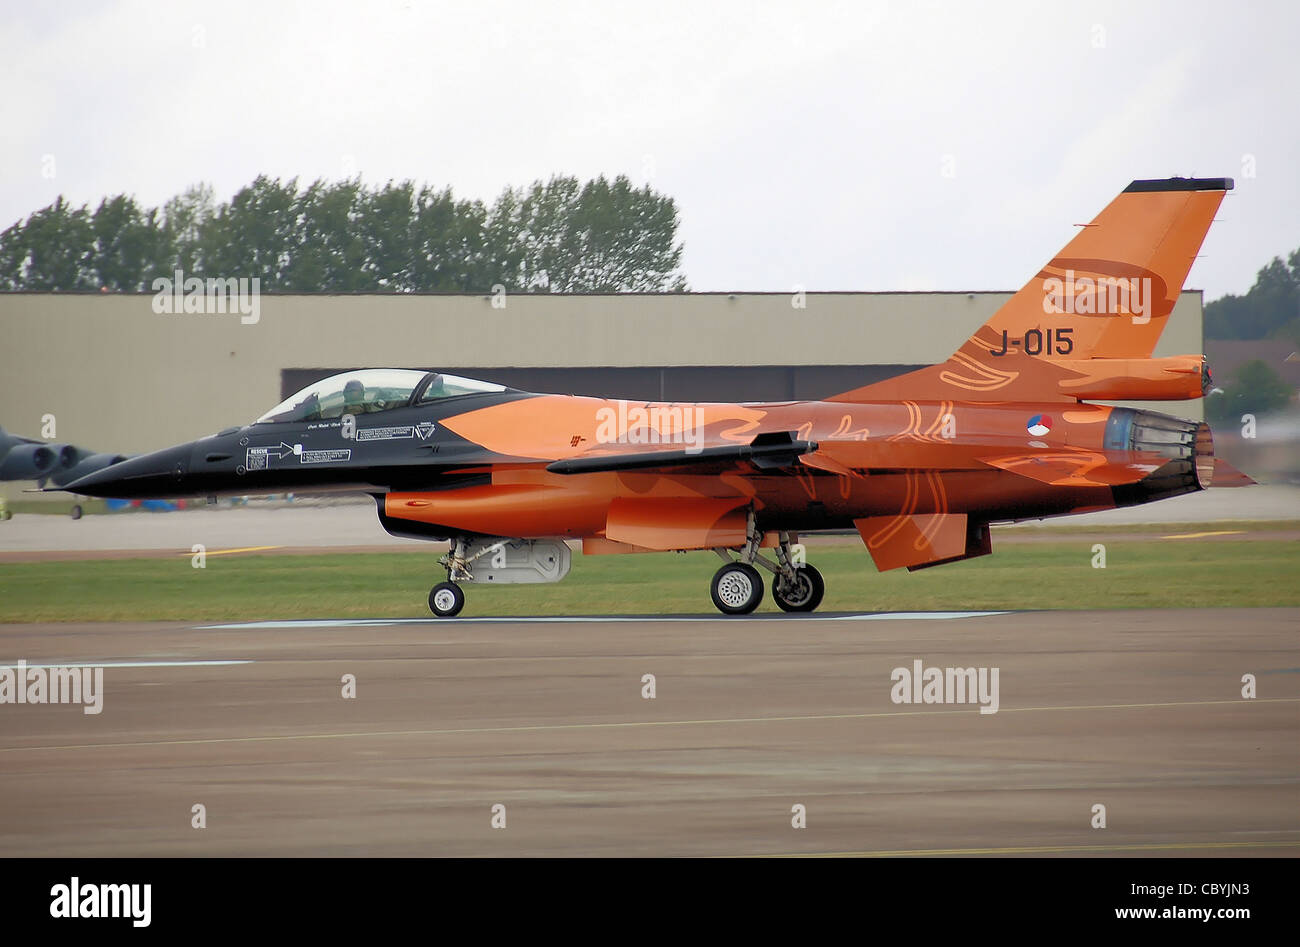 Royal Netherlands Air Force F-16 Fighting Falcon (tail code J-015) starts its takeoff run at the 2009 Royal International - Stock Image